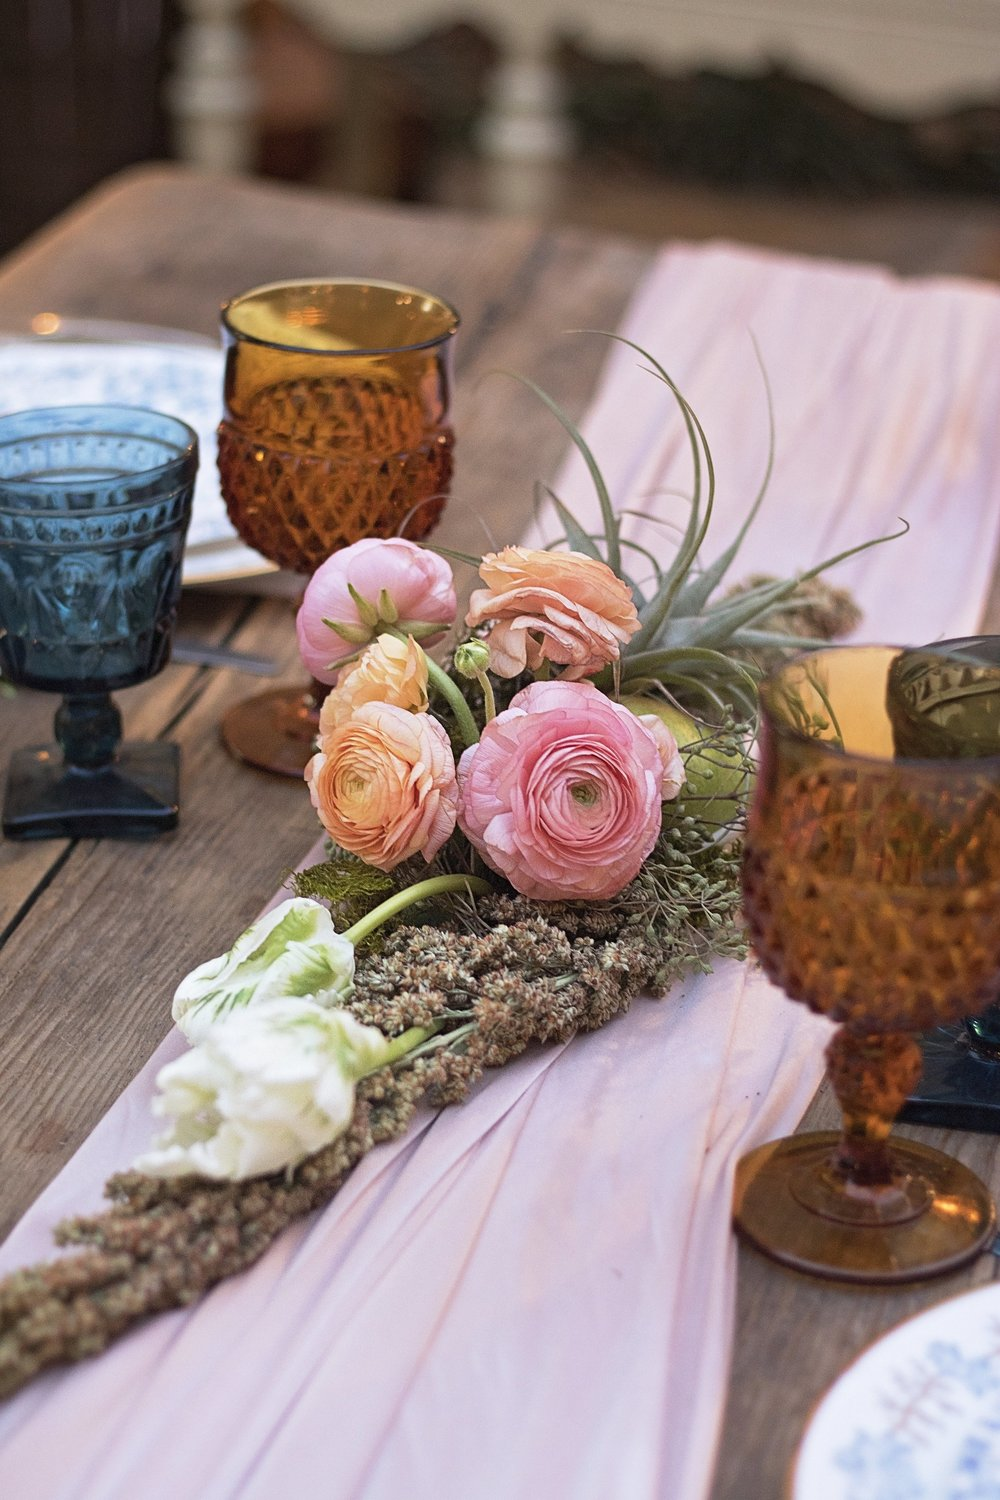 Where the Wild Things Are Southern Vintage Tablescape